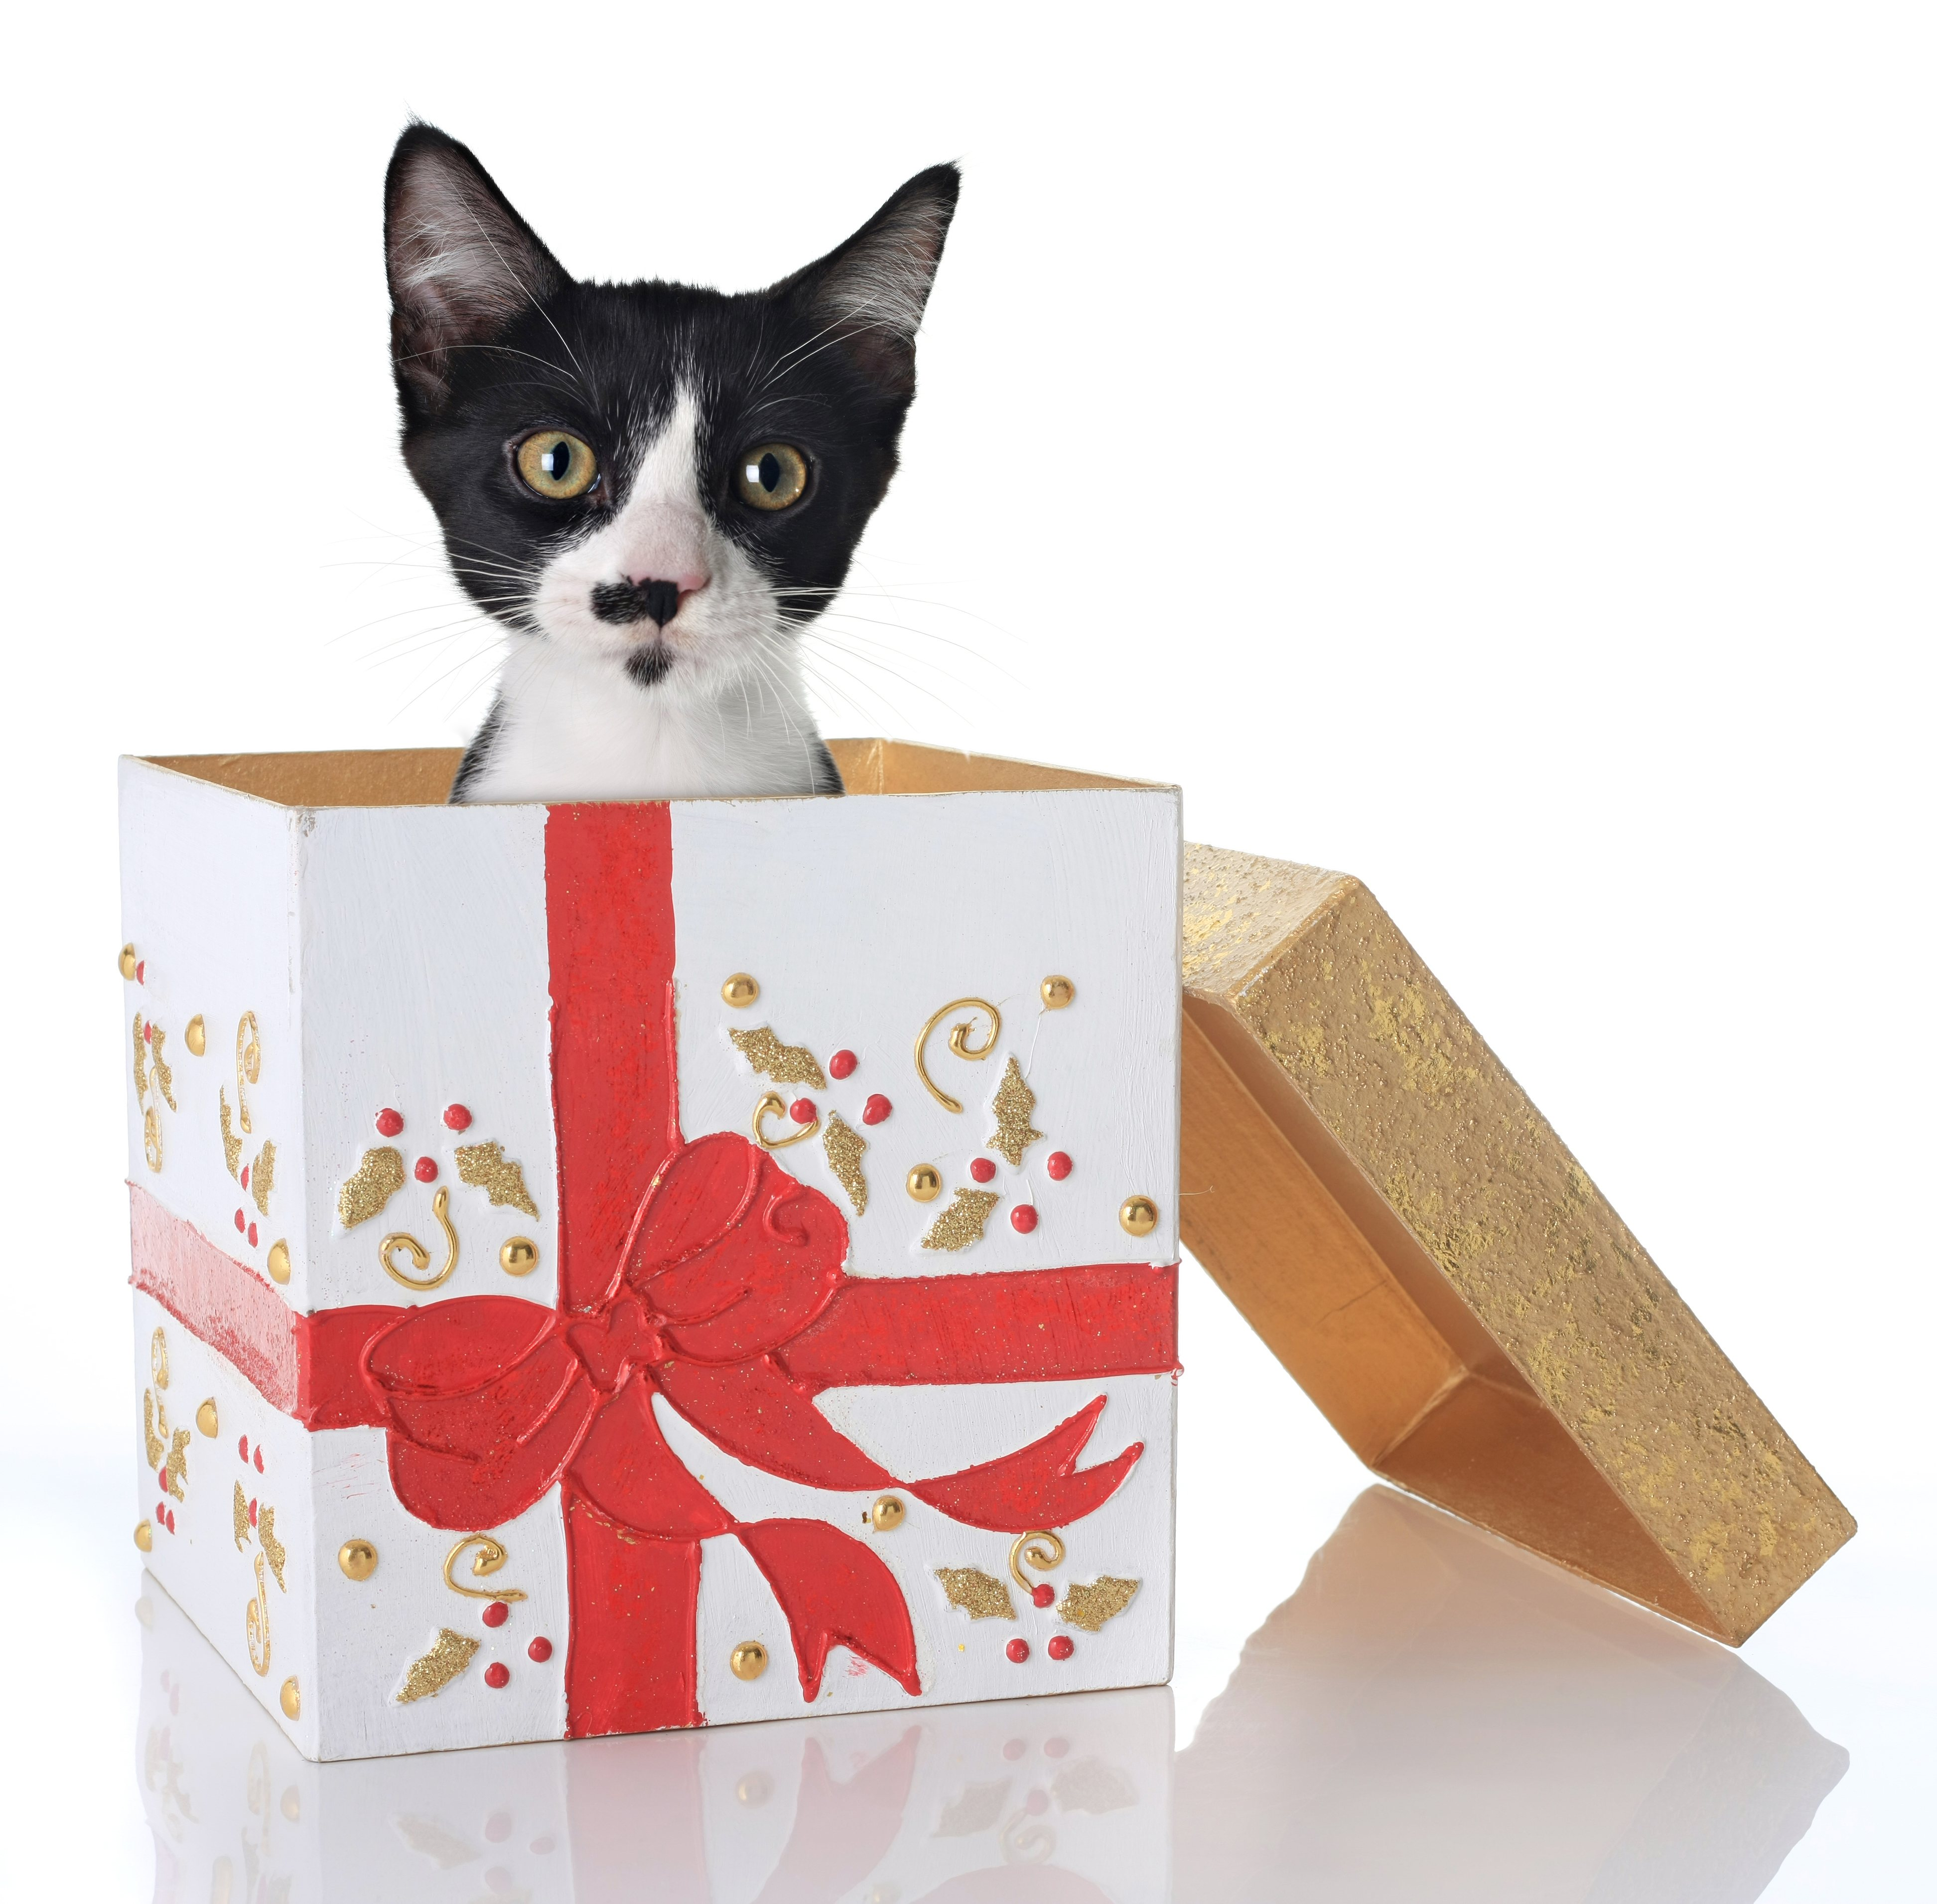 Should I Give a Pet for a Christmas Present?